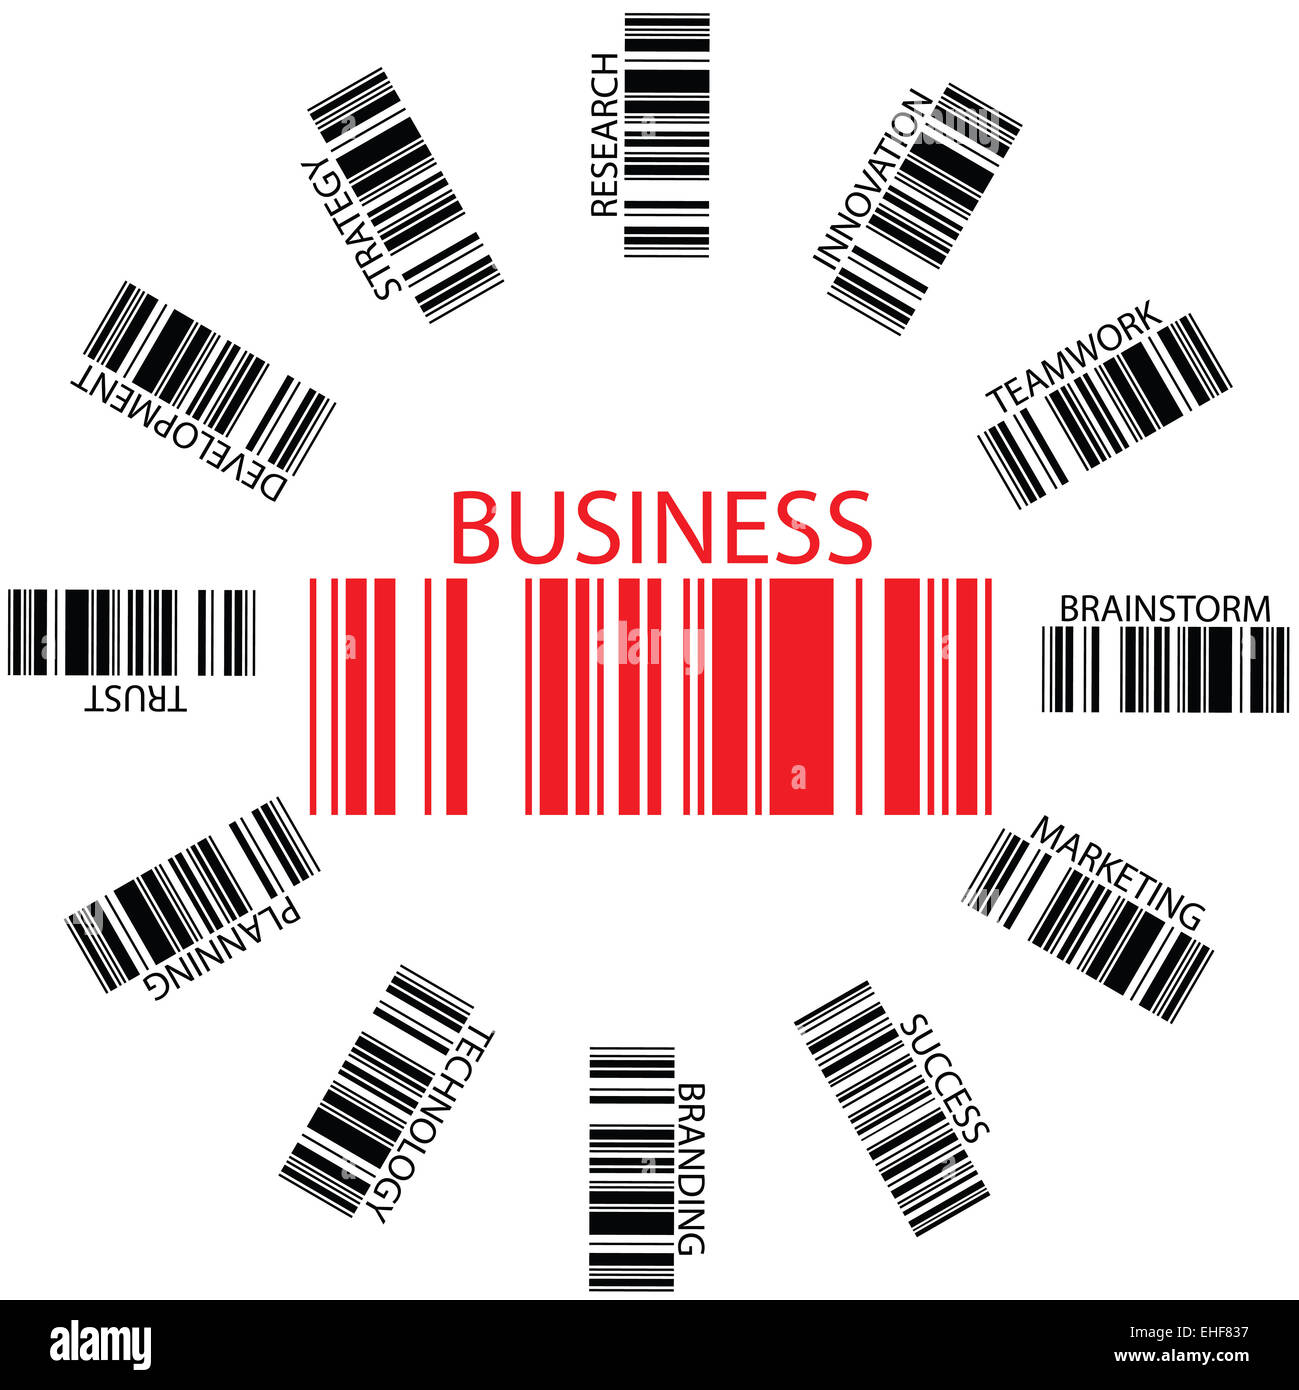 business bar codes - Stock Image